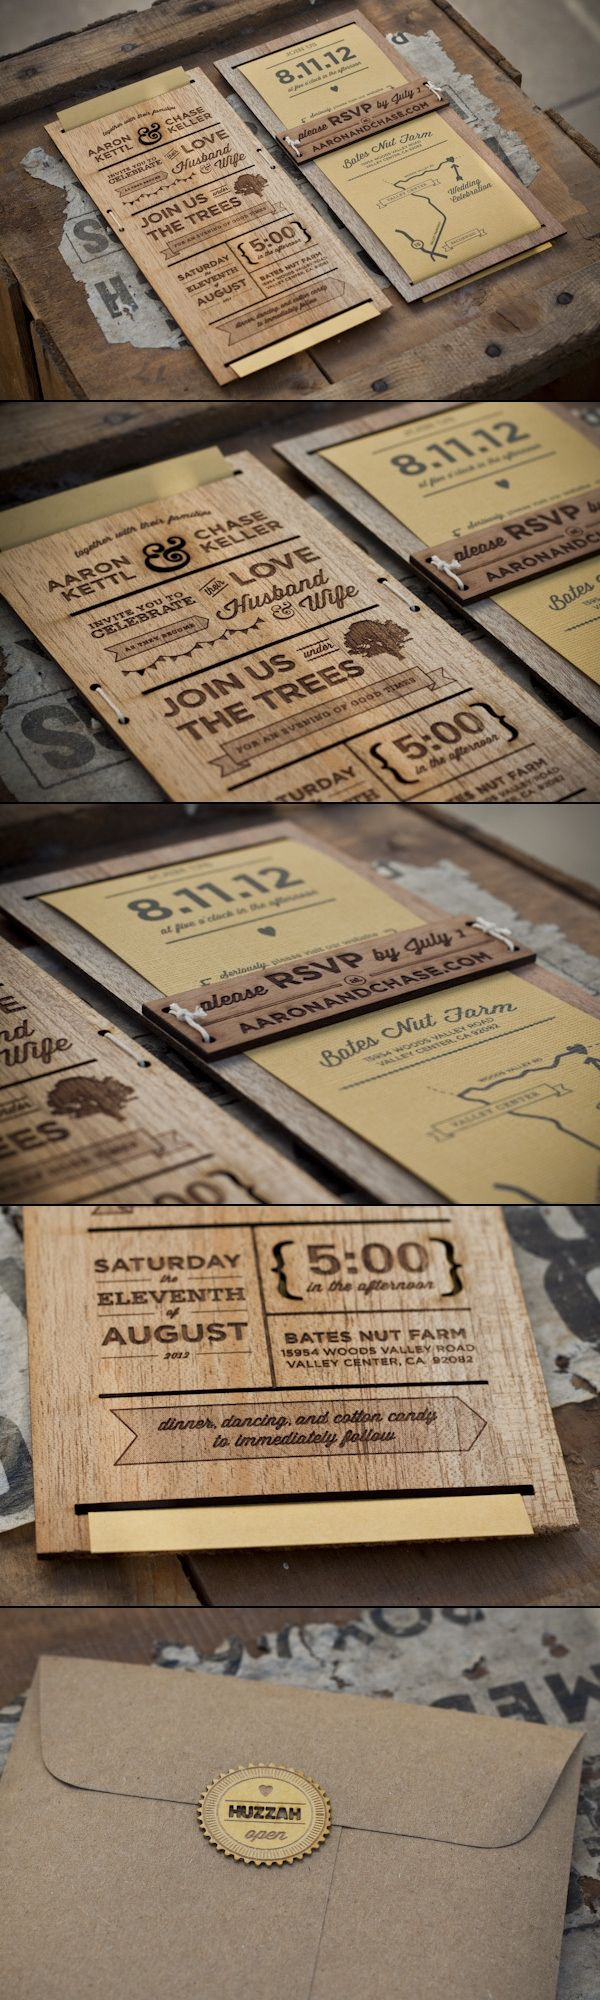 Personal Wedding Invitation Laser cut/engraved http://www.behance.net/gallery/Wedding-Invitation/5030949